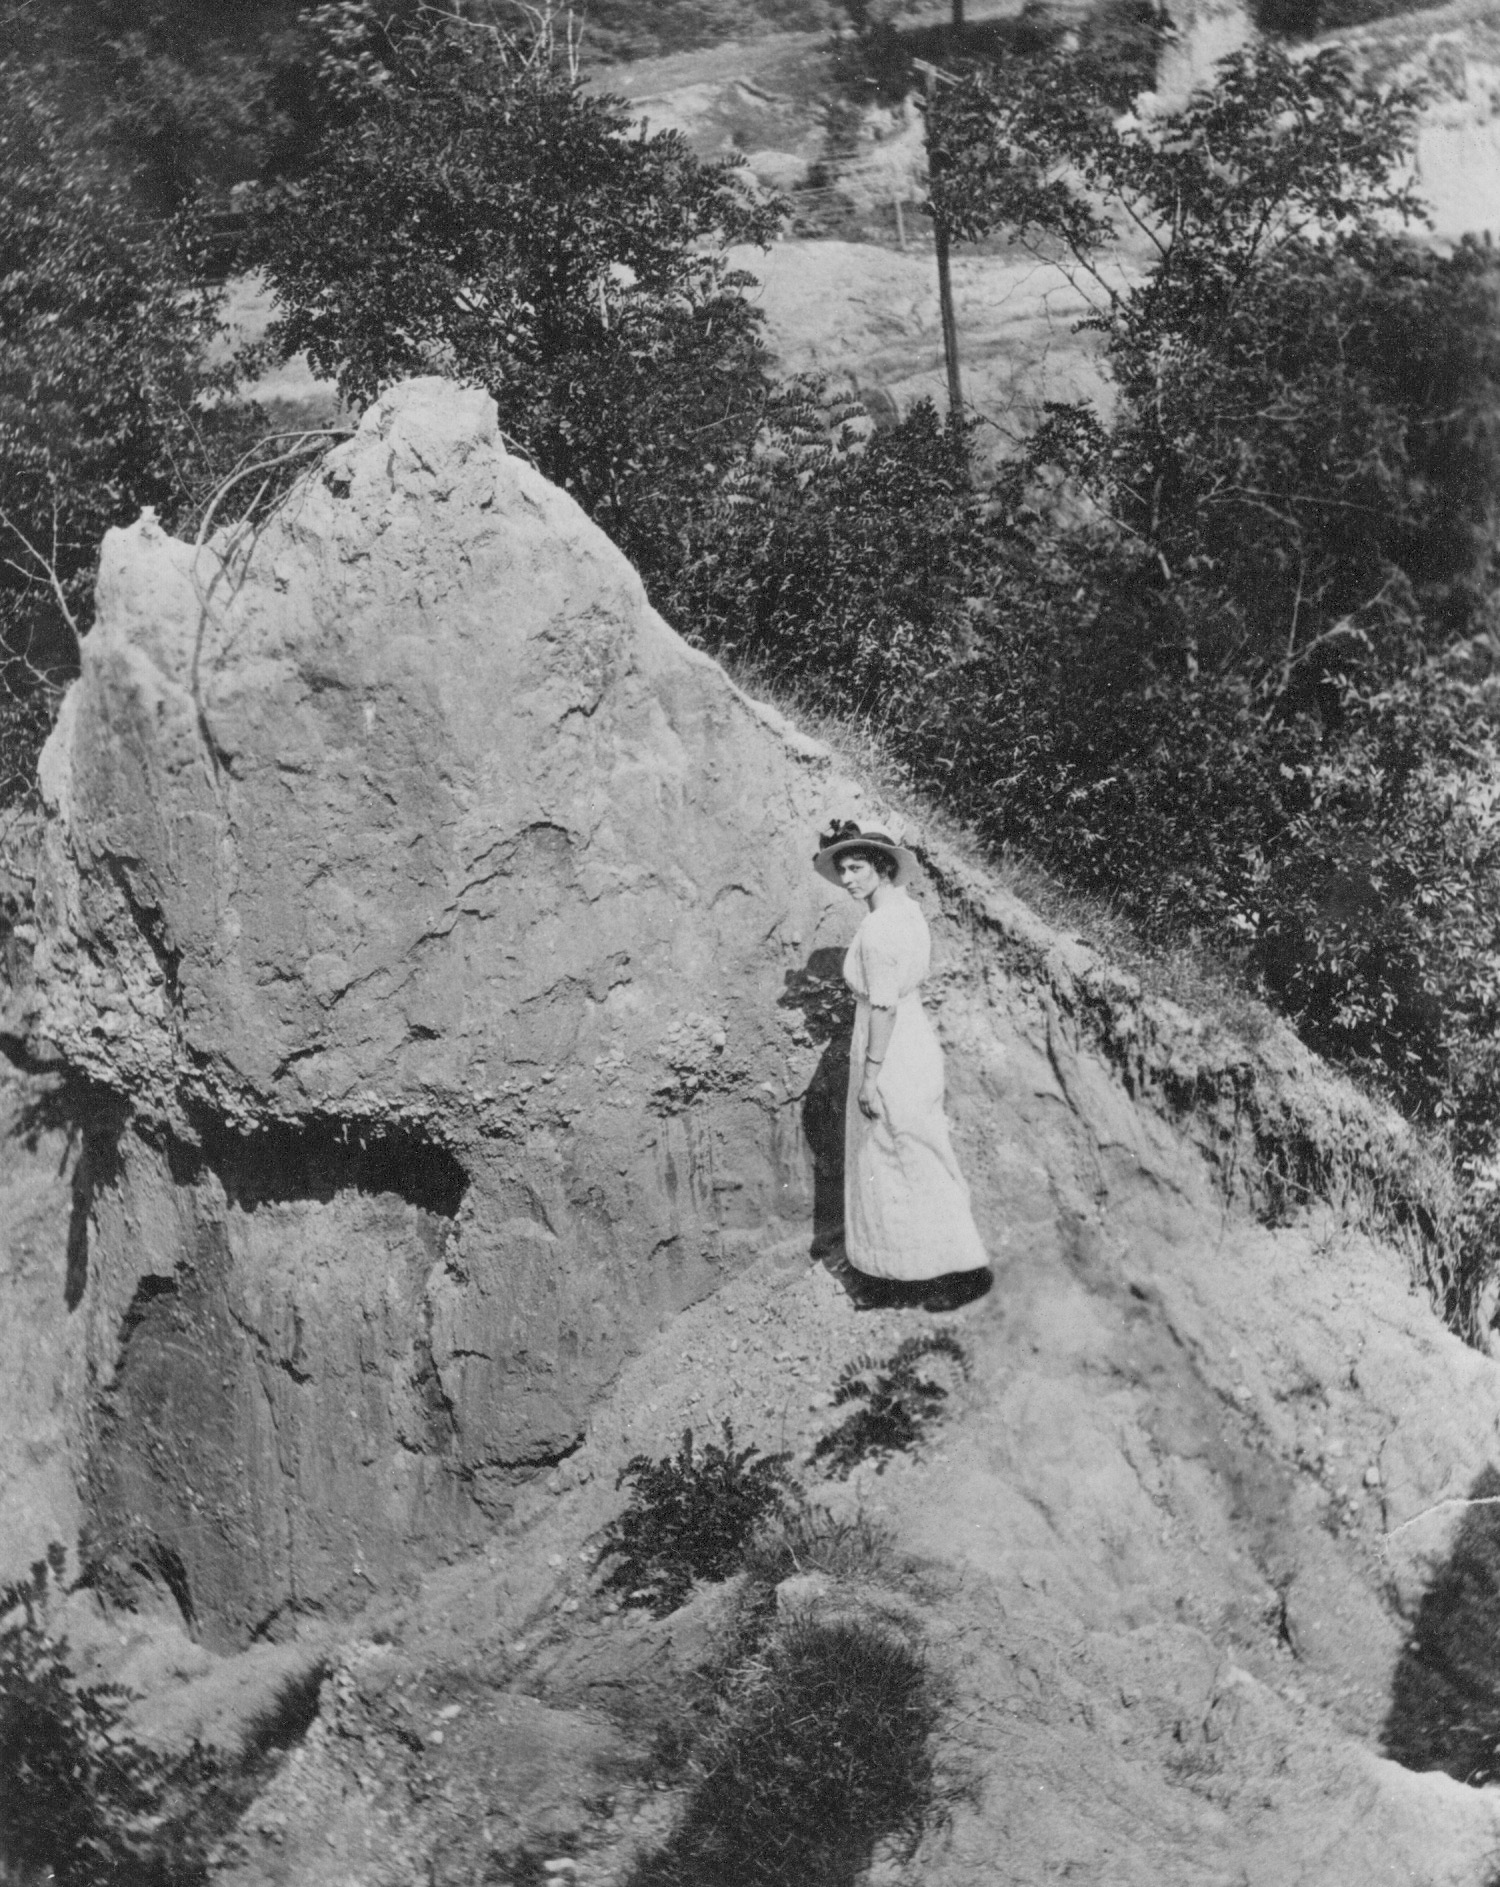 A woman stands in Tapps' Hole, the location that Raleigh settler William Tapp used as shelter and a base for hunting and exploring.